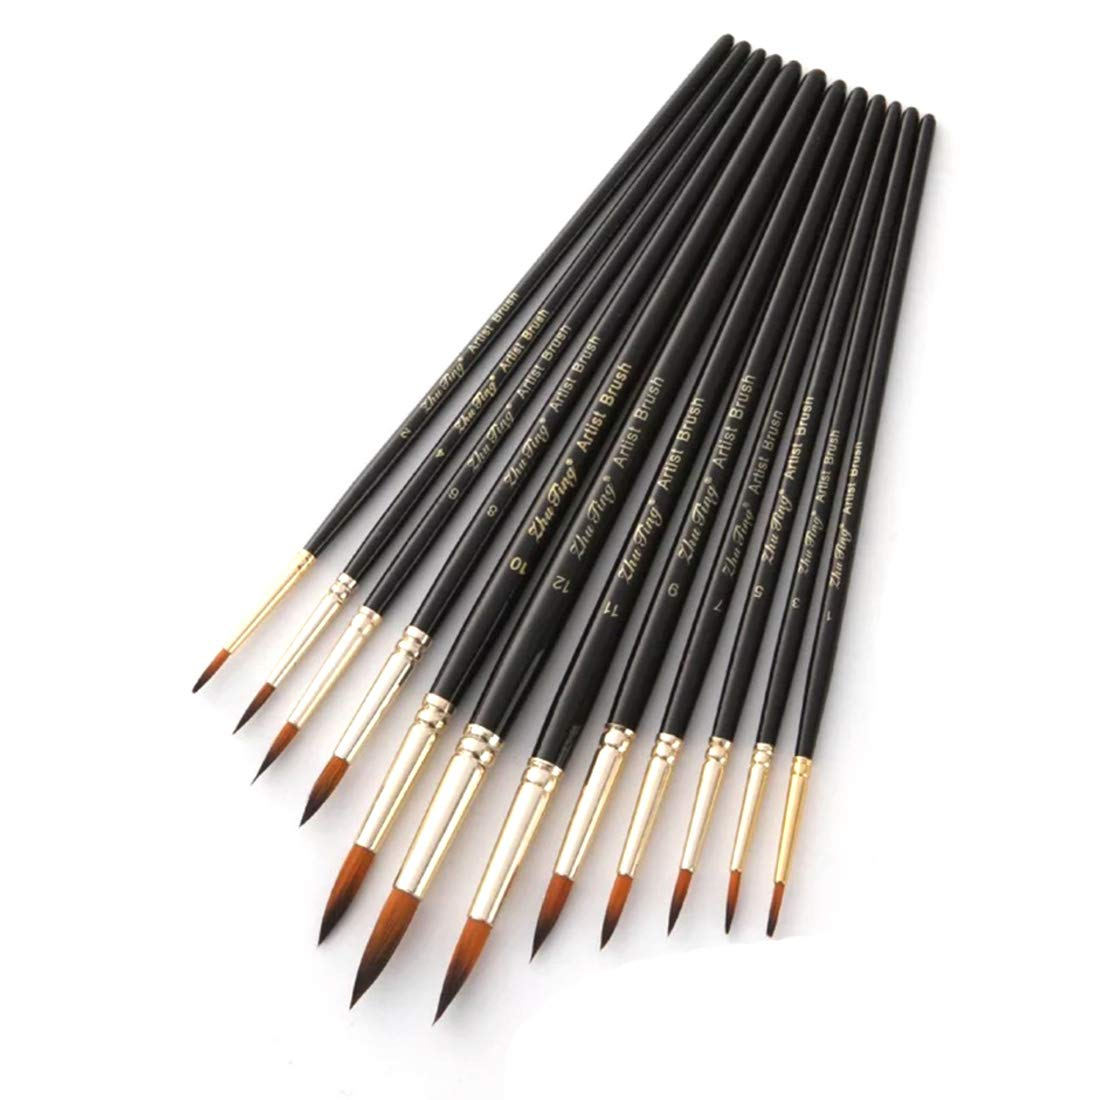 Acrylic Oil Watercolor Paint Brushes, Art Face and Body Professional Painting Kits, Anti-Shedding Synthetic Nylon Tips Paintbrushes, 12 Pieces (Black) by longkin